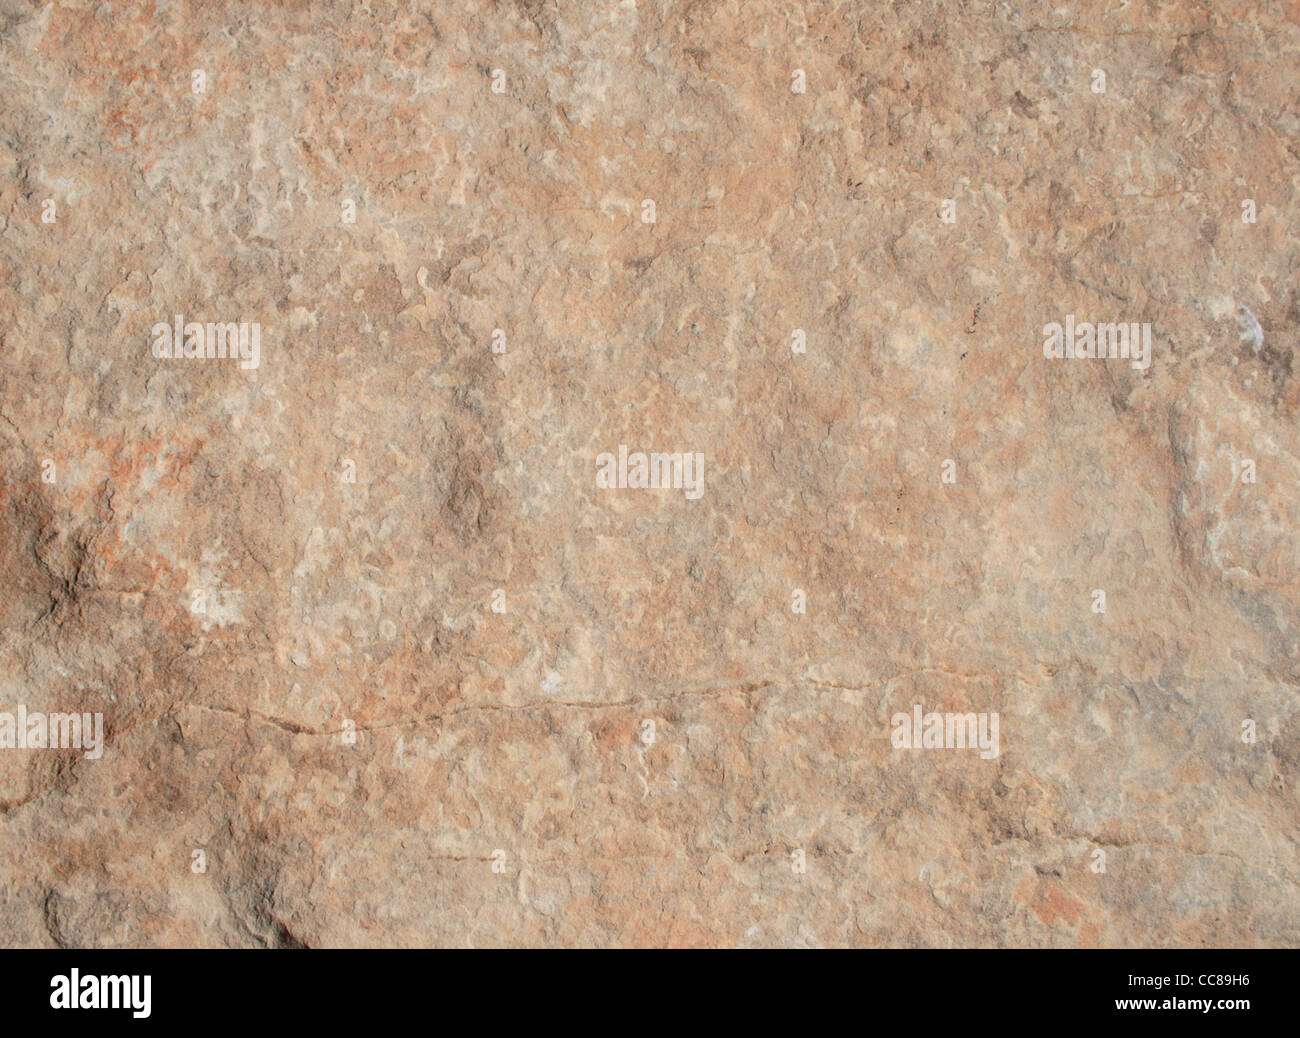 mottled sandstone background surface with interesting texture - Stock Image